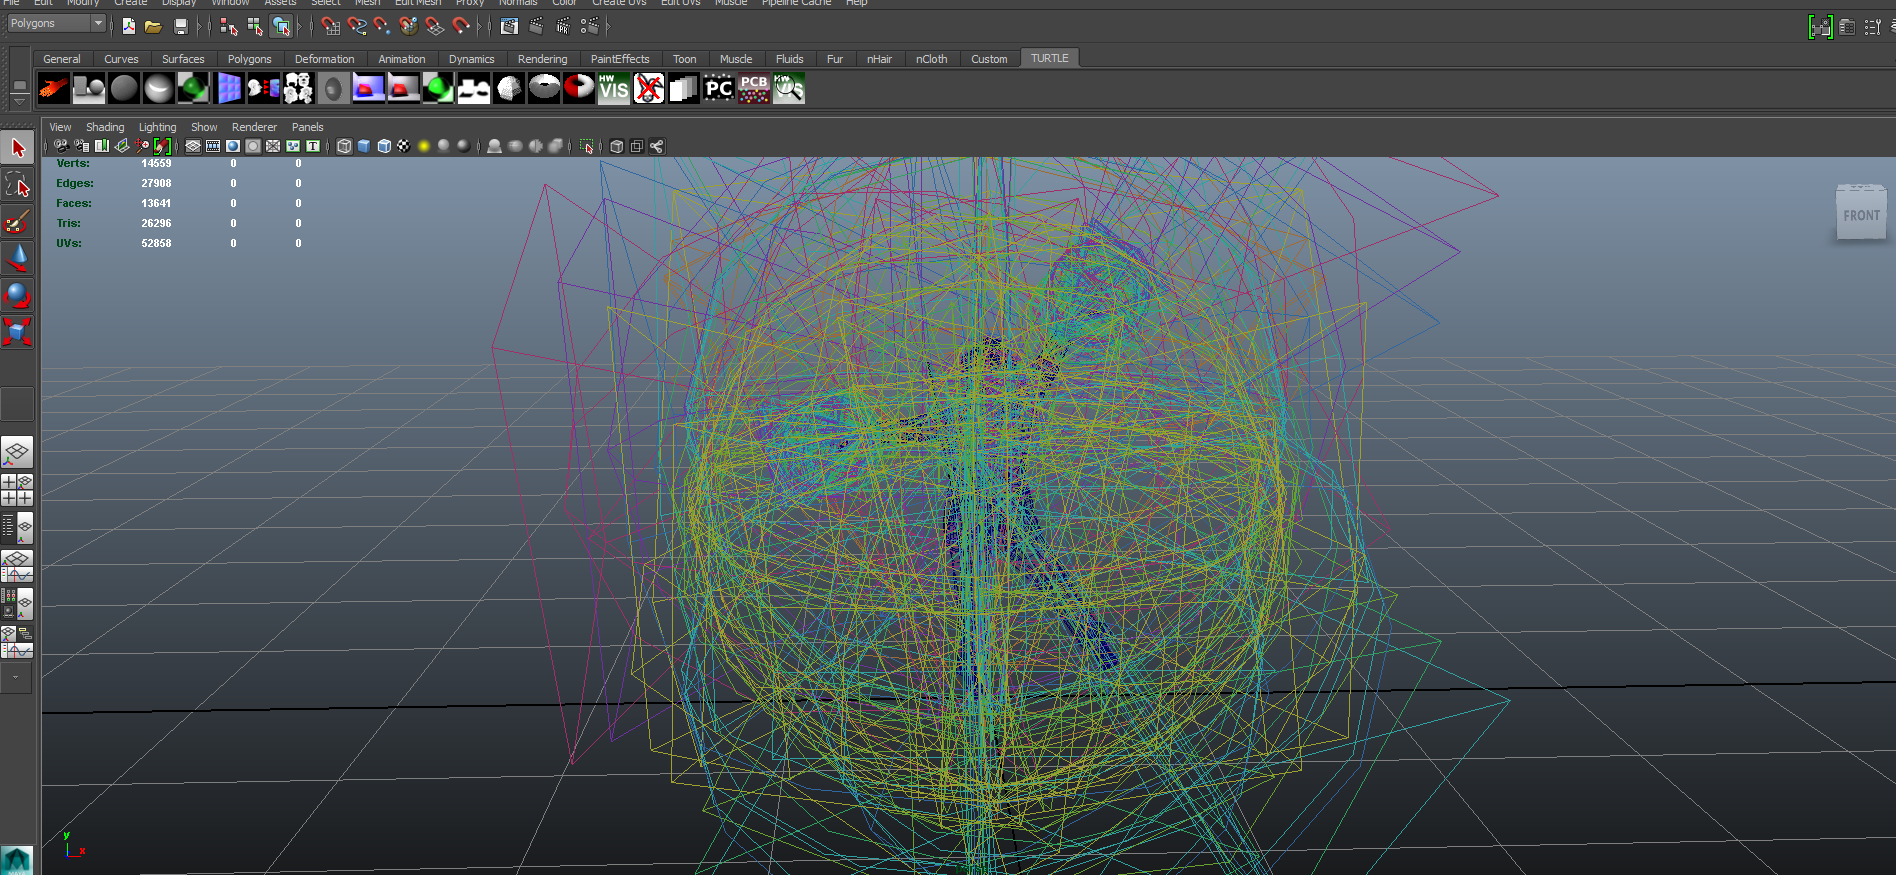 rig.png